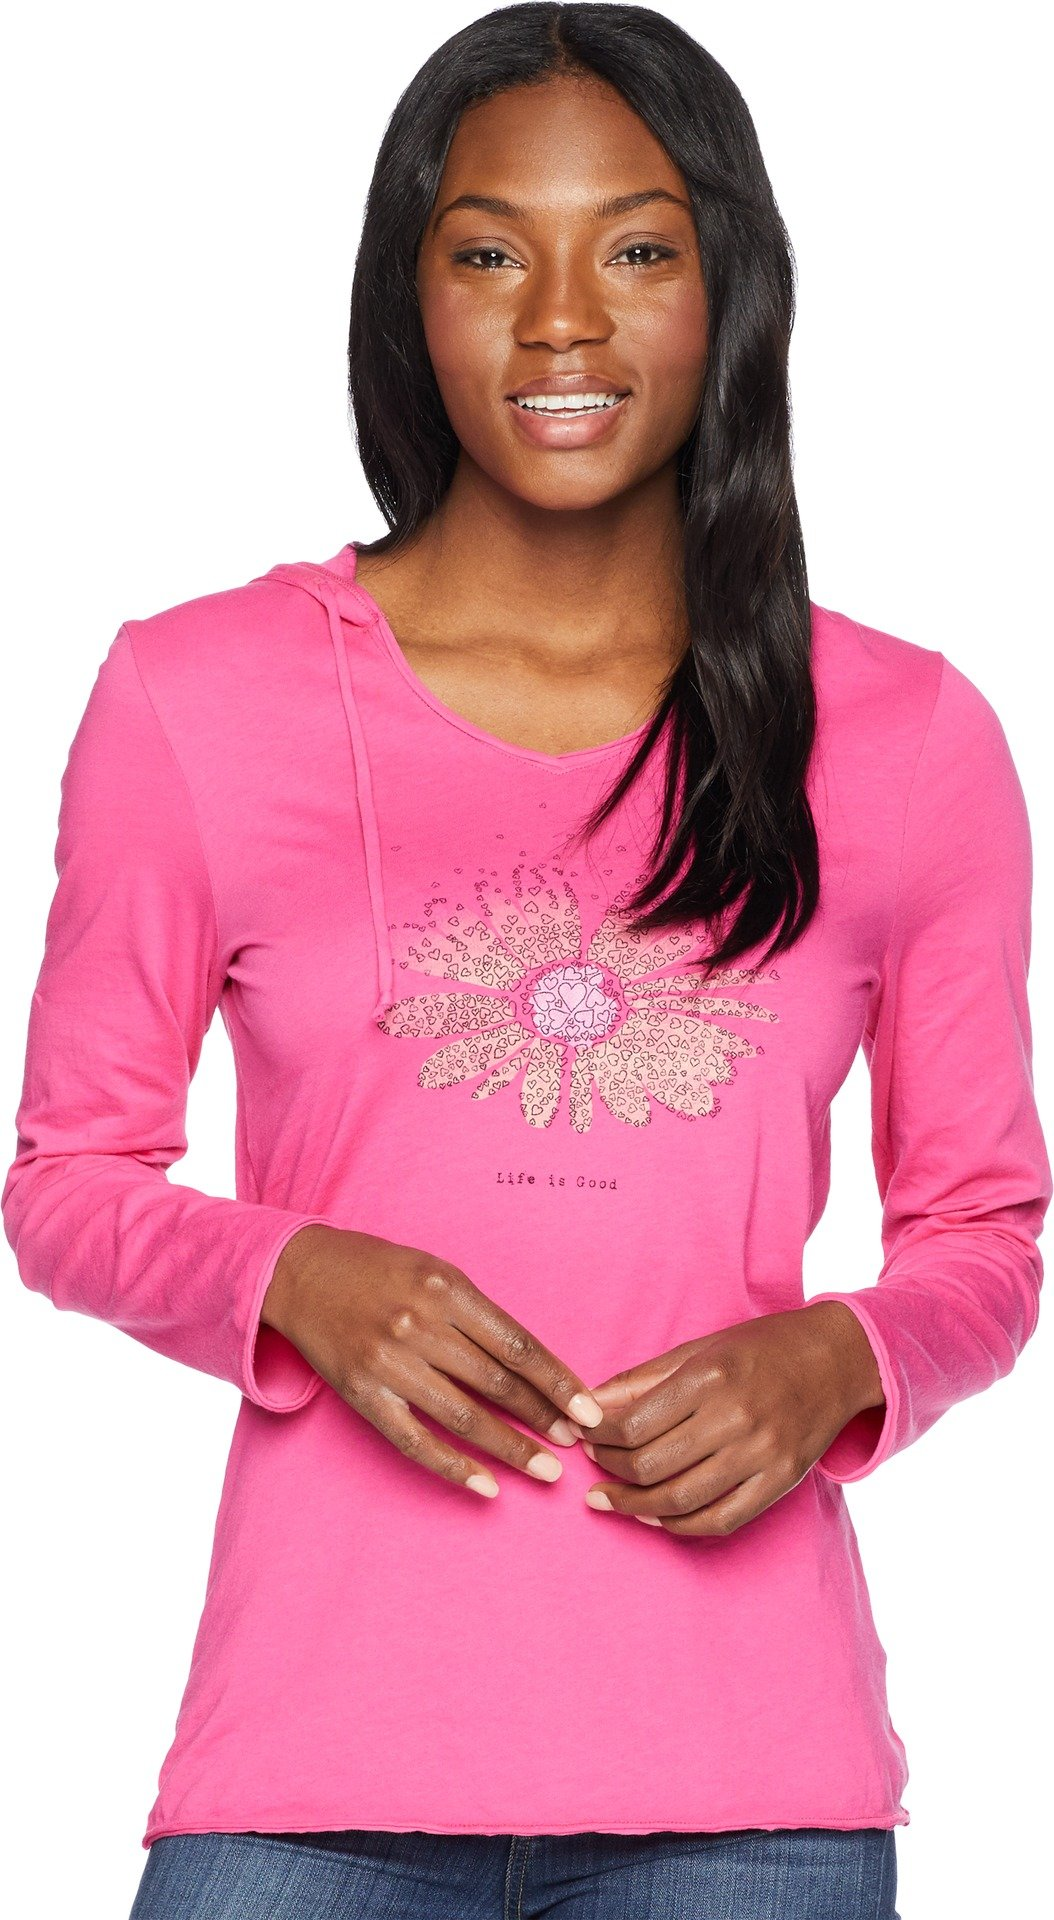 Life is Good Womens Hooded Smooth Longsleeve tee Daisy Love, Fiesta Pink, Large by Life is Good (Image #1)